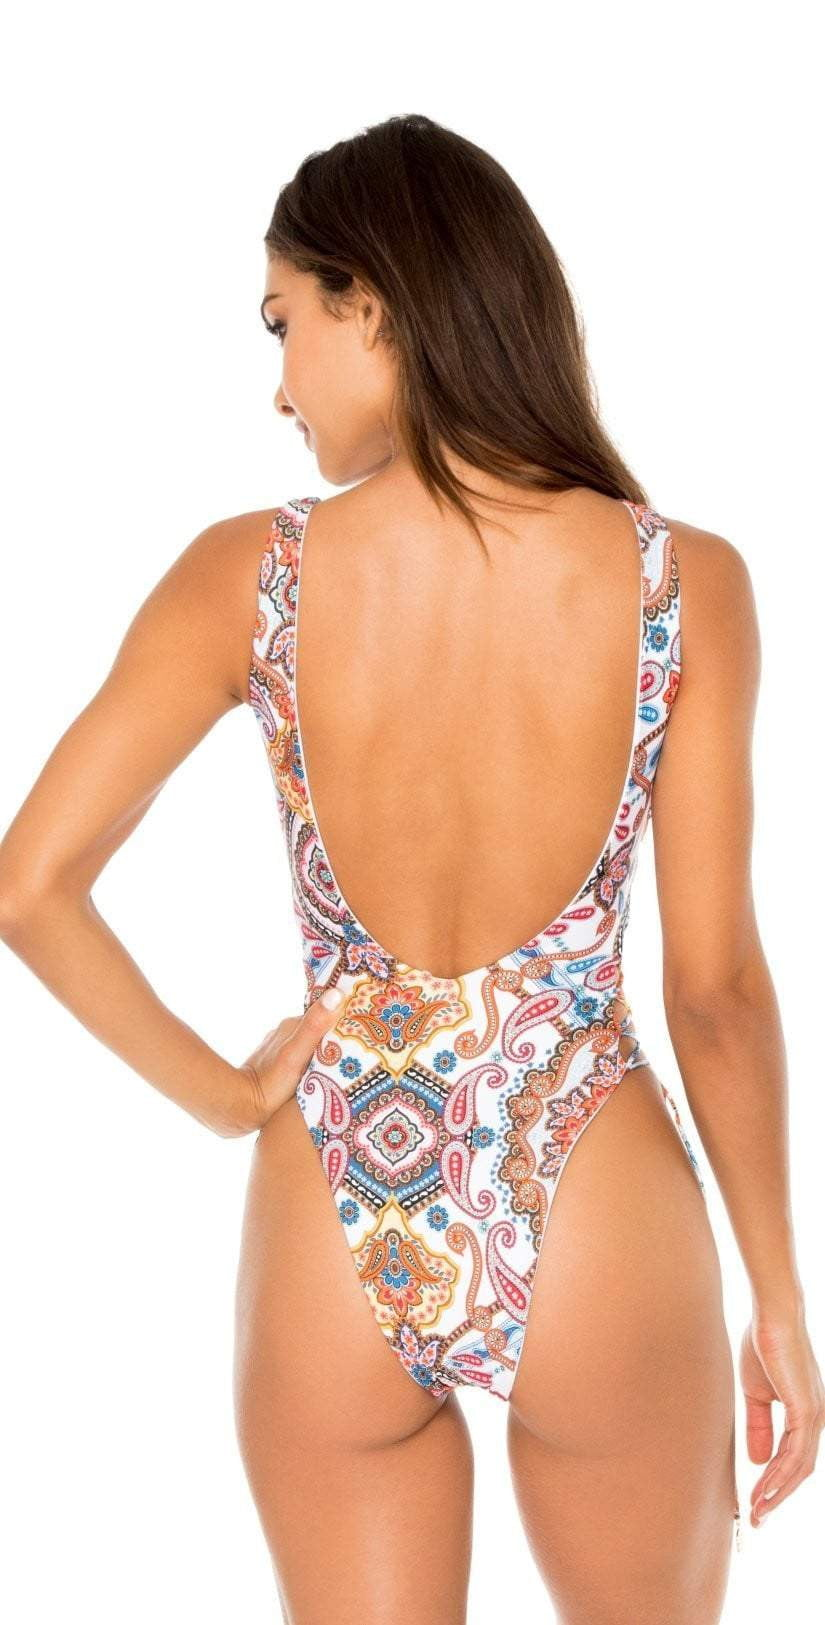 Luli Fama La Maestranza Interlaced Open Side White One Piece Bodysuit L602A38 002: